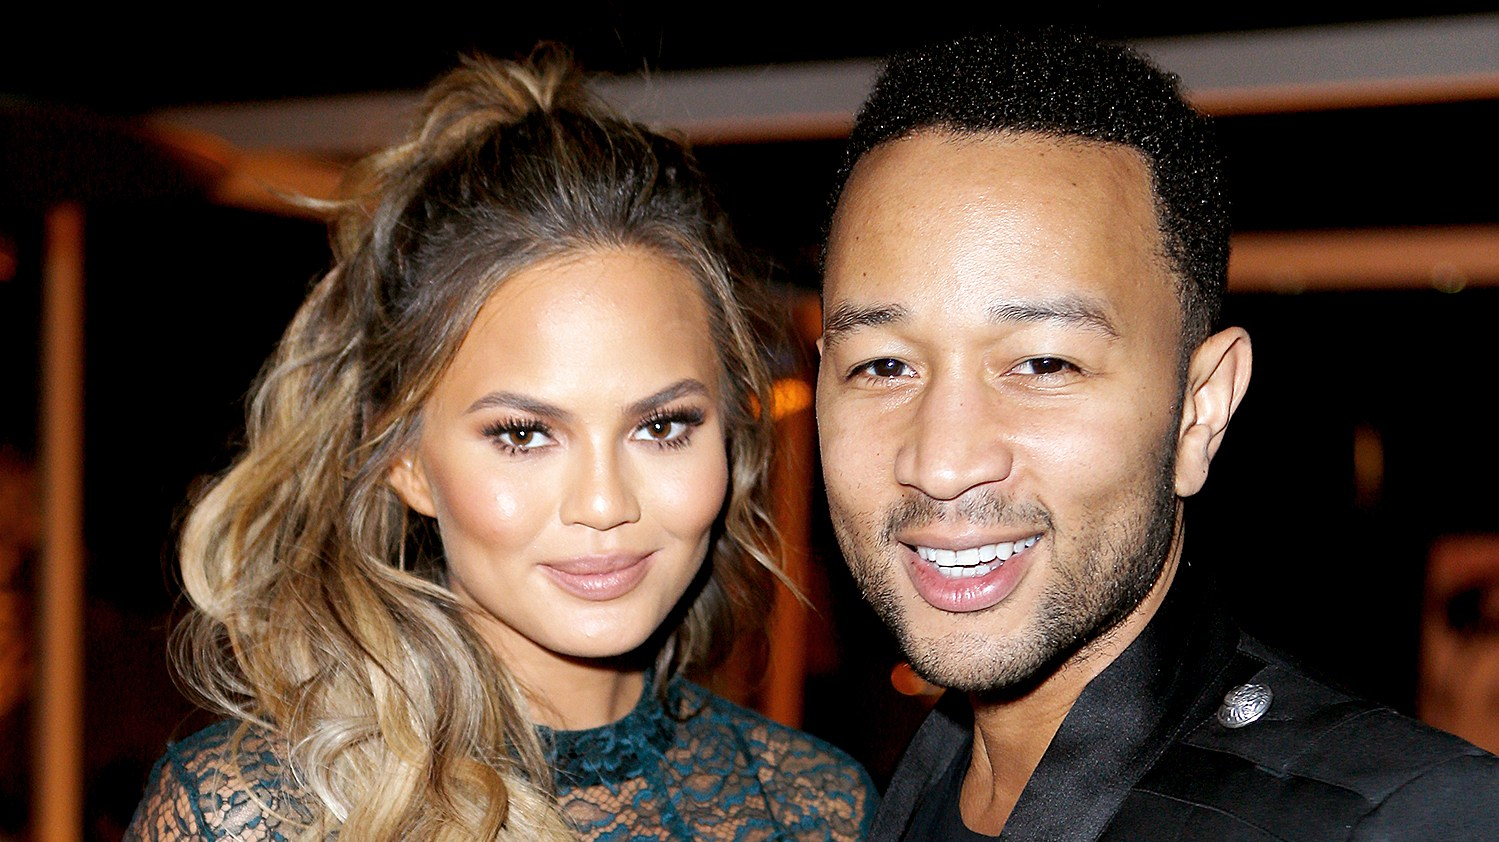 Chrissy Teigen and John Legend attend The Hollywood Reporter's Beauty Dinner at The London West Hollywood on November 11, 2015.